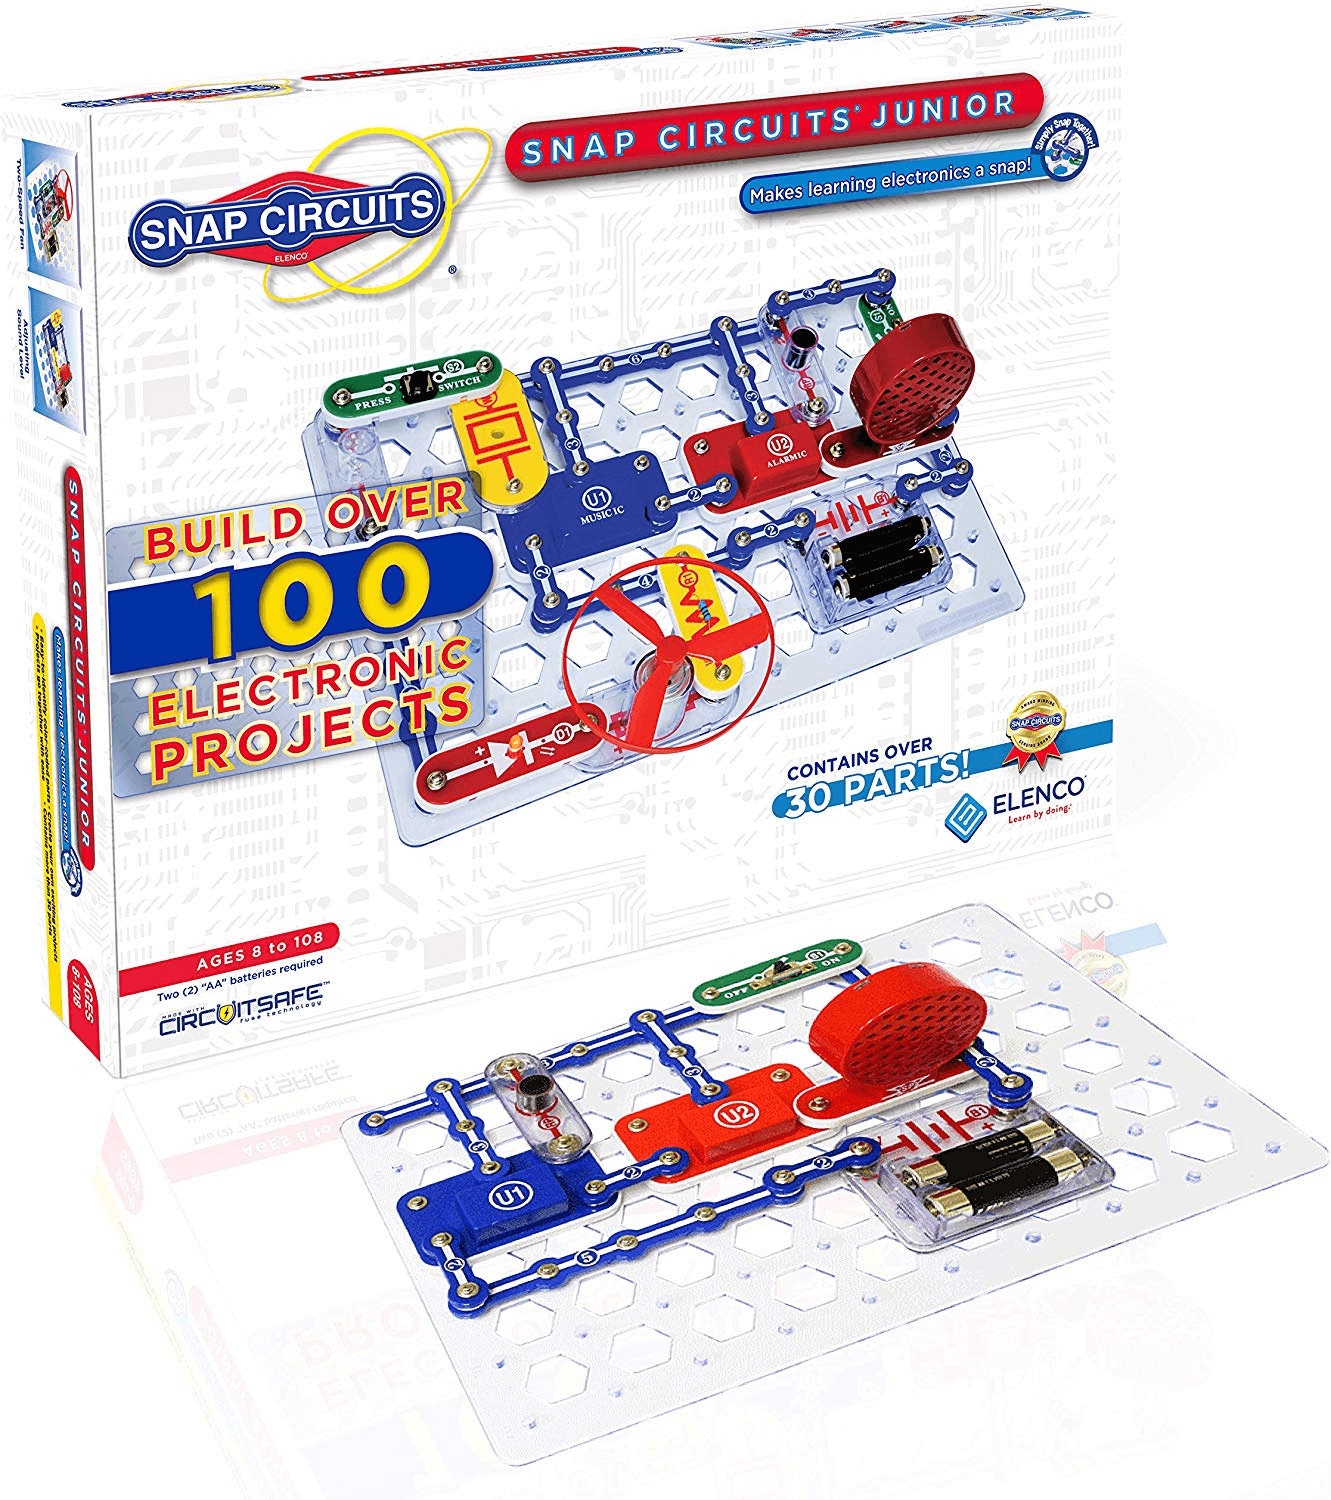 STEM gifts: Snap Circuits